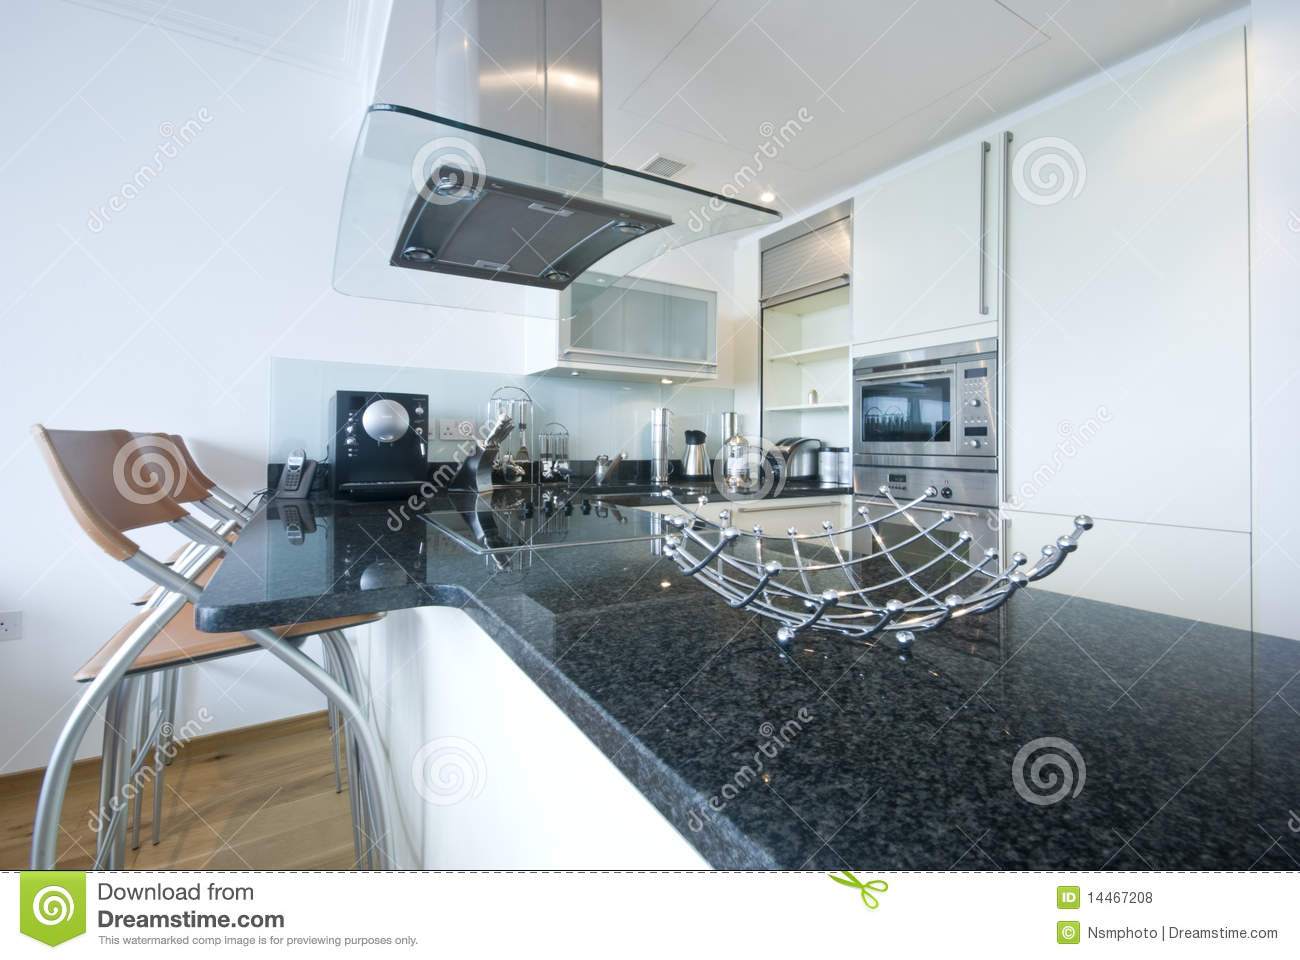 Uncategorized Kitchen Appliances Leicester kitchen appliances leicester tboots us rugby fitted kitchens showroom displays warwickshire leicester